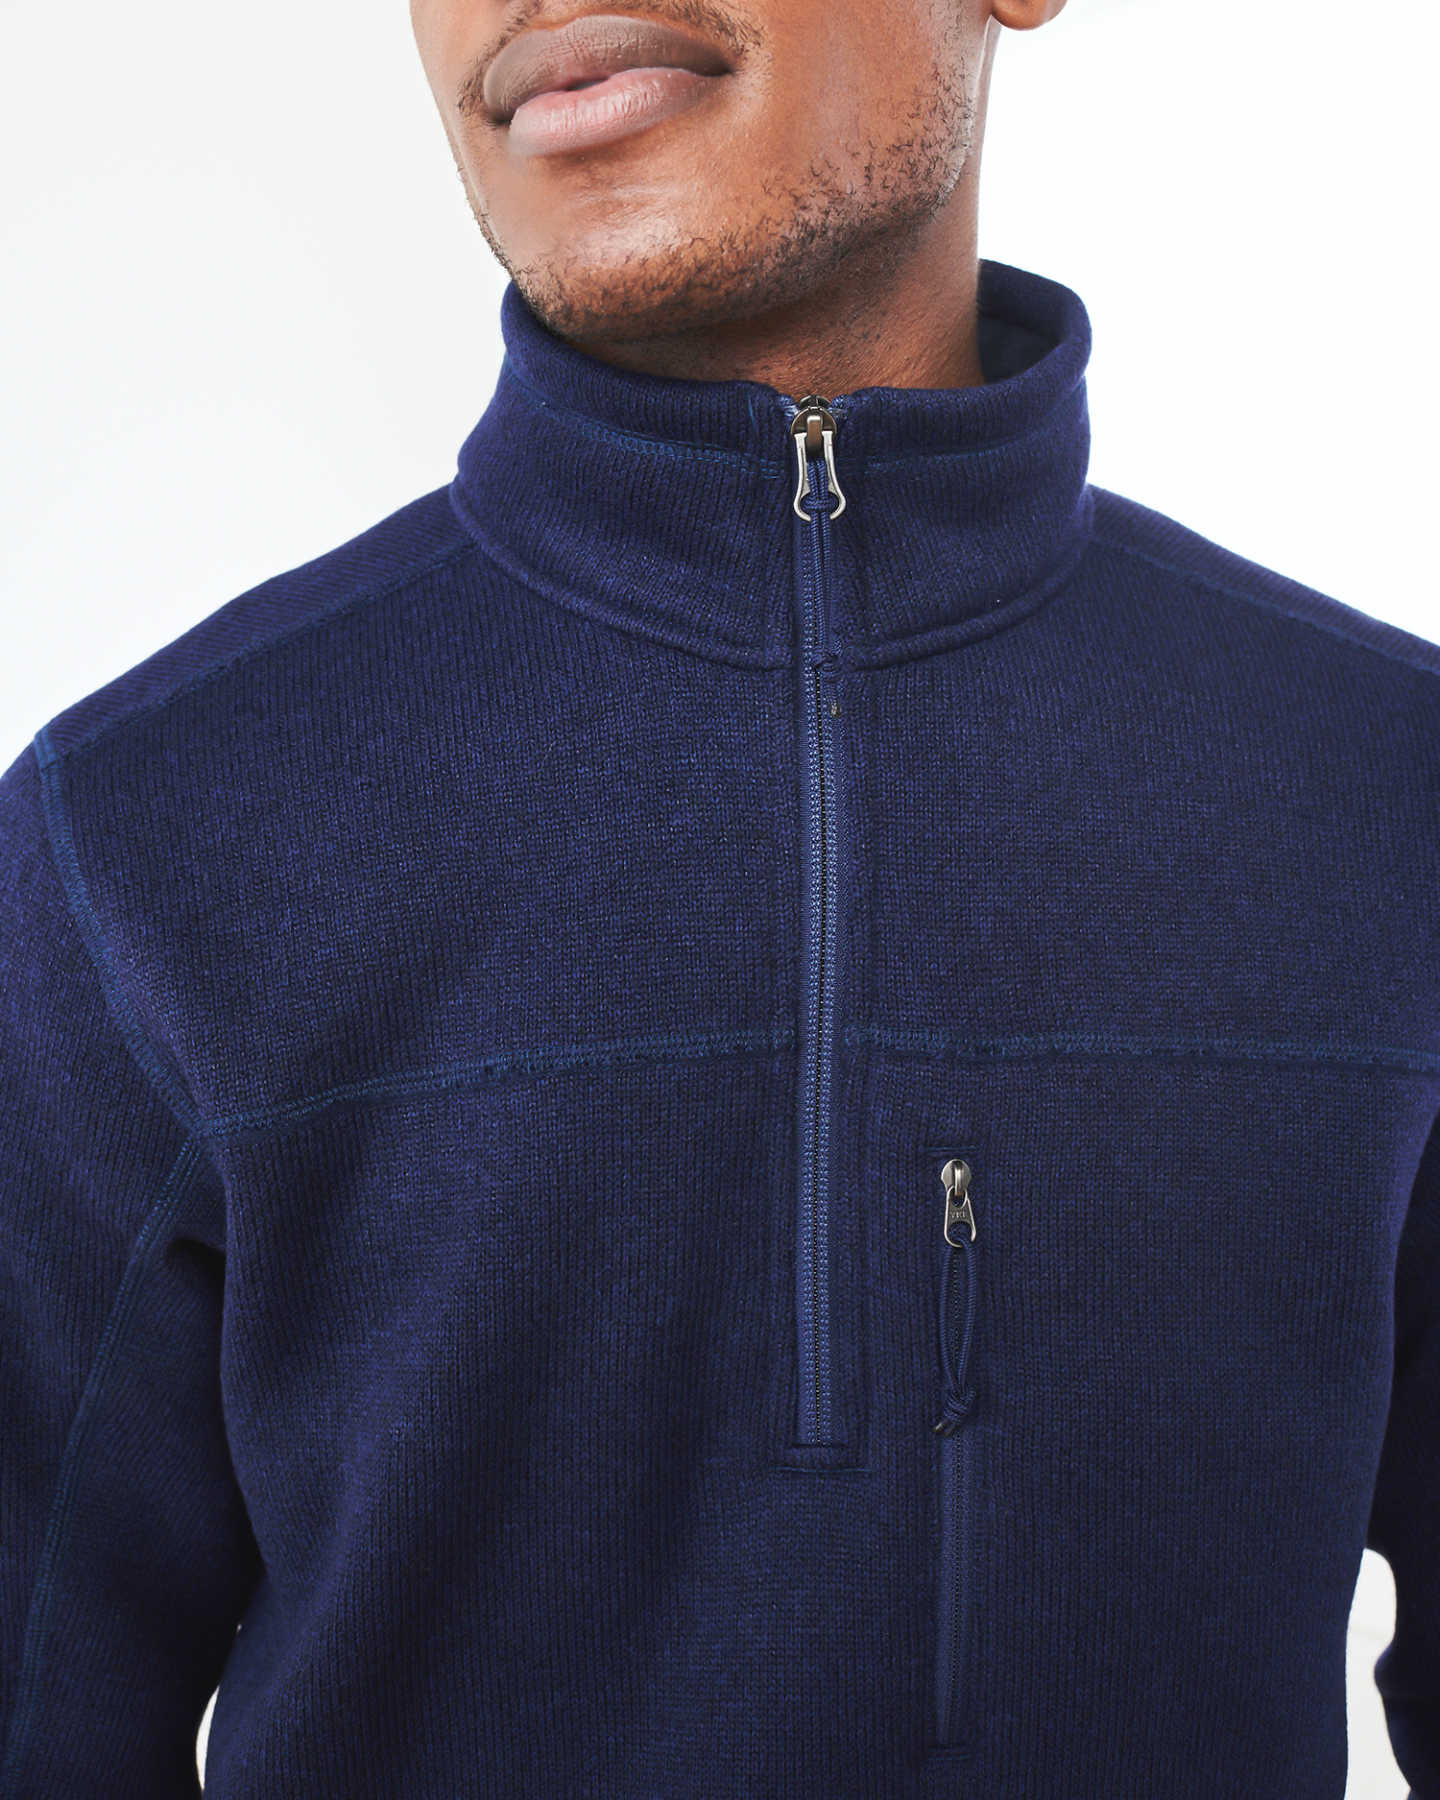 Recycled Sweater Fleece Pullover Jacket - Navy - 5